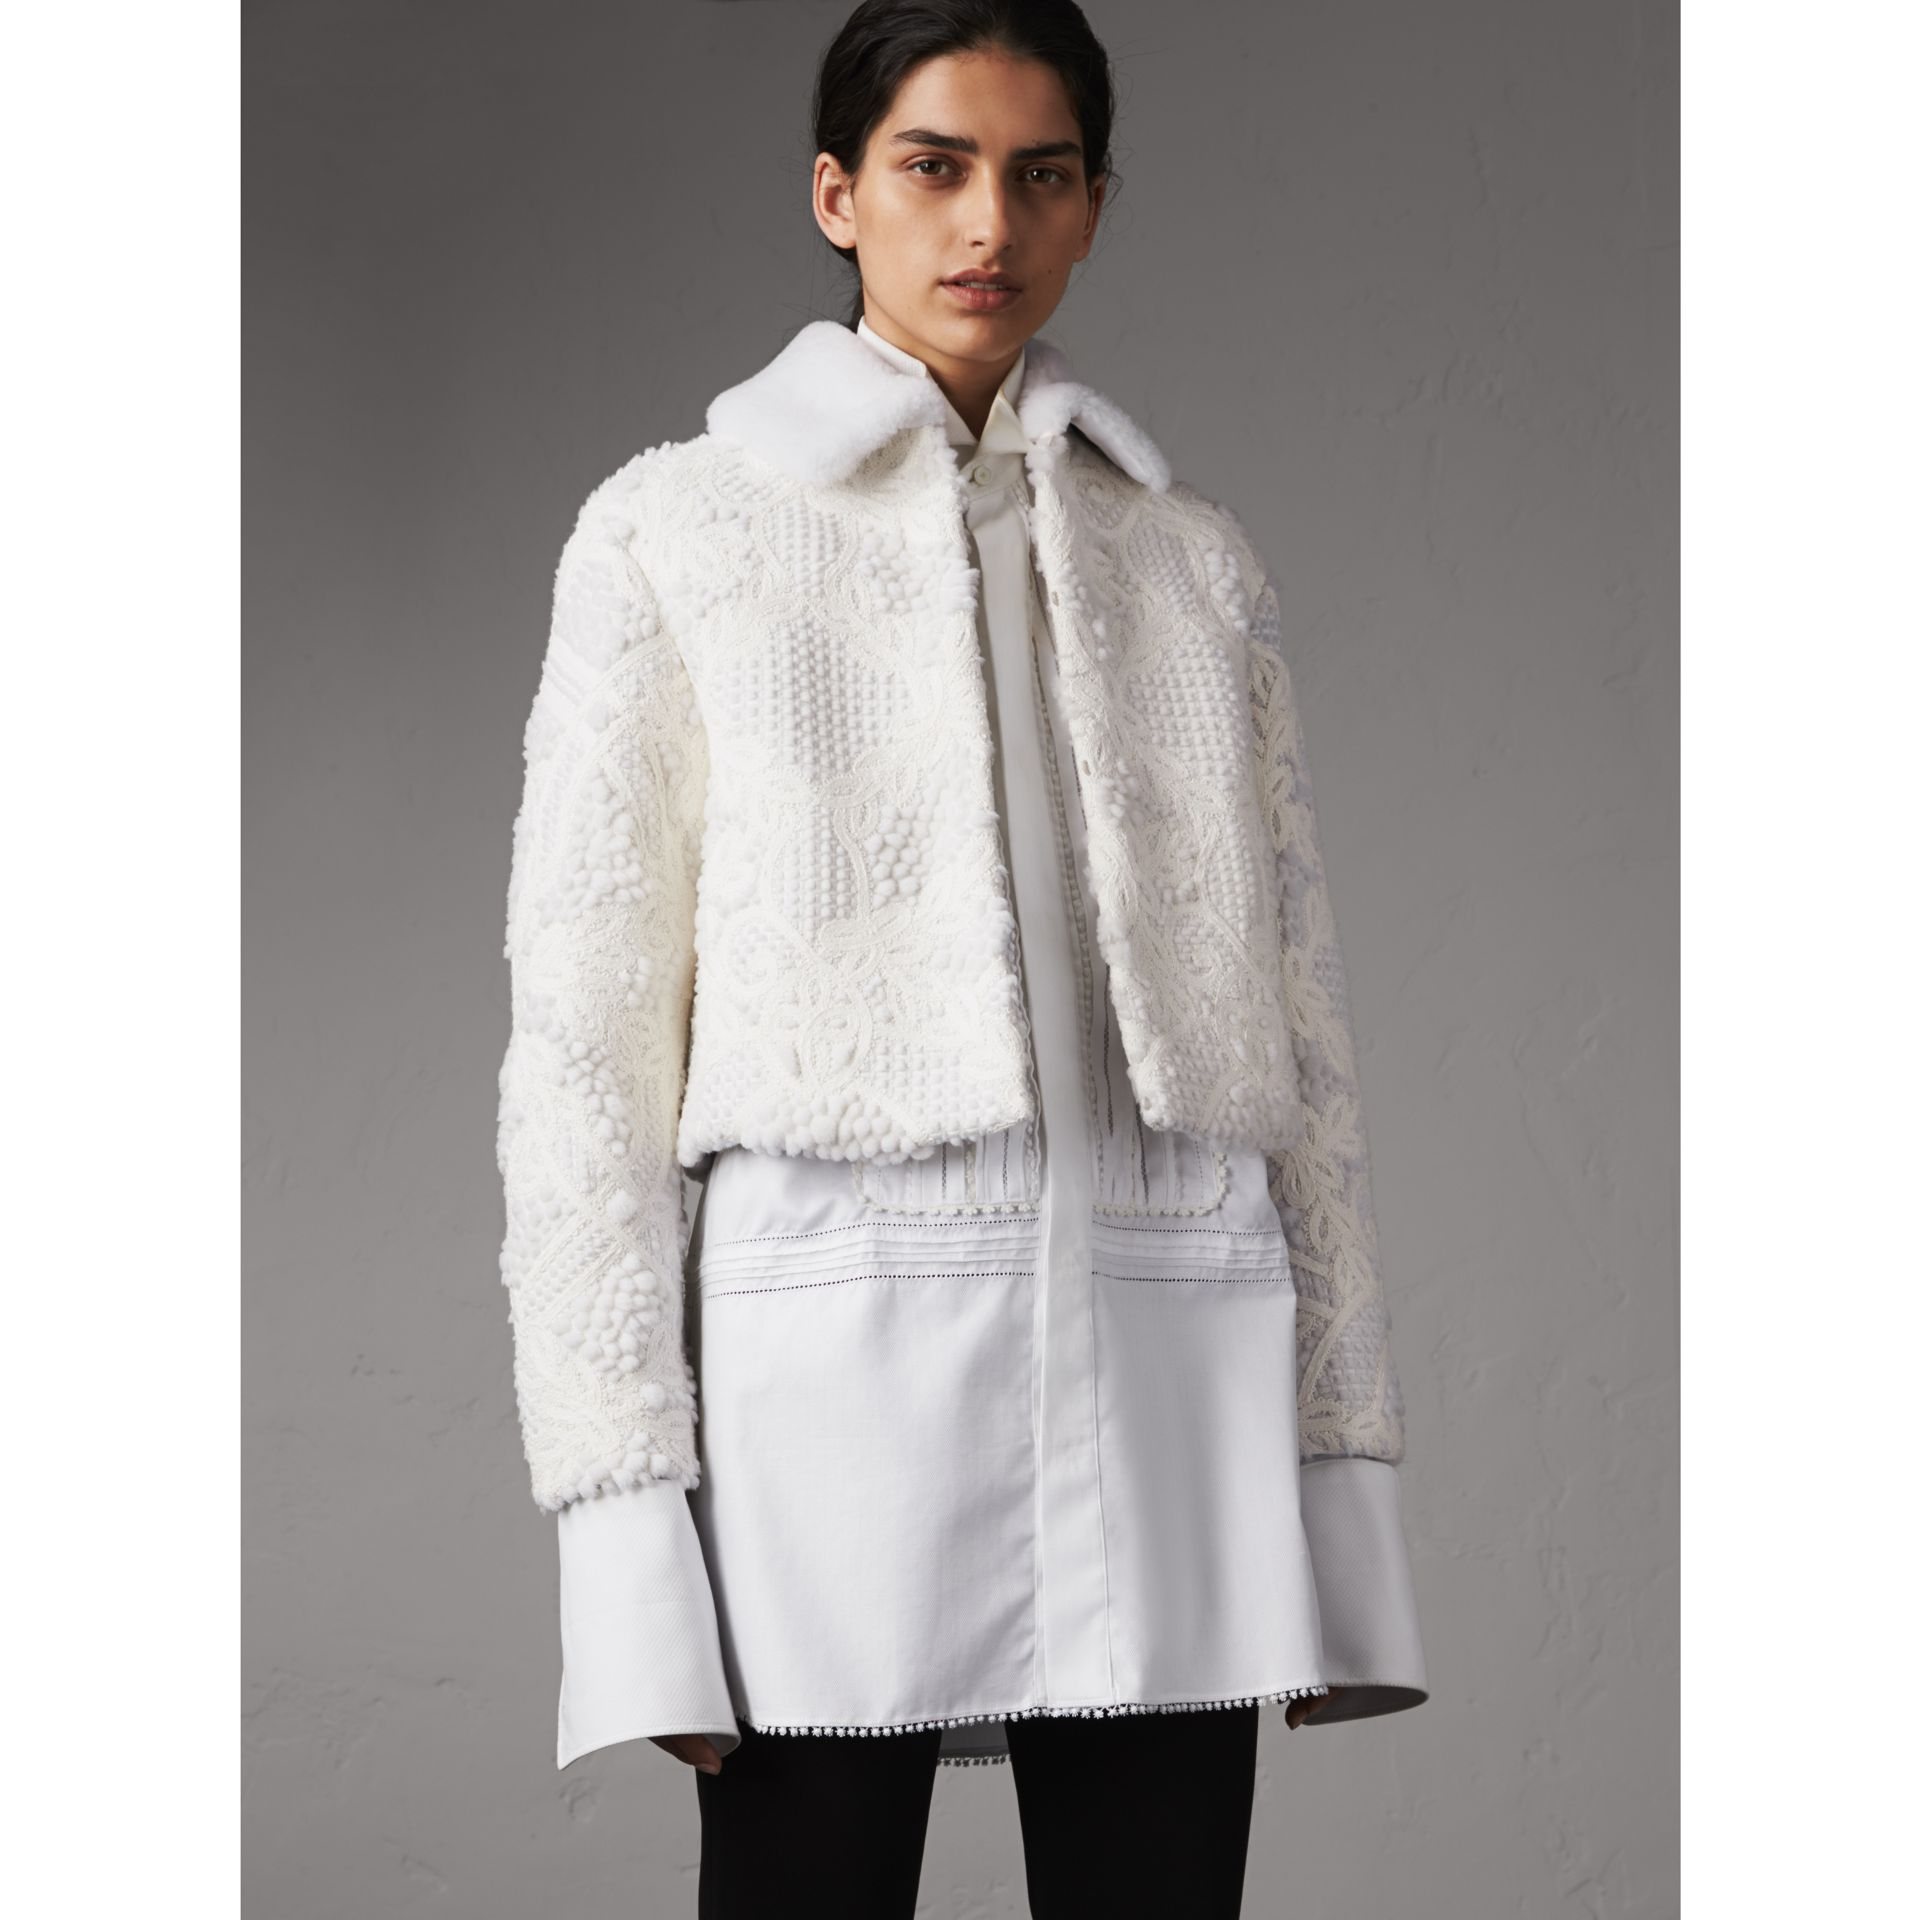 Macramé Lace-embellished Shearling Jacket in White - Women | Burberry - gallery image 1